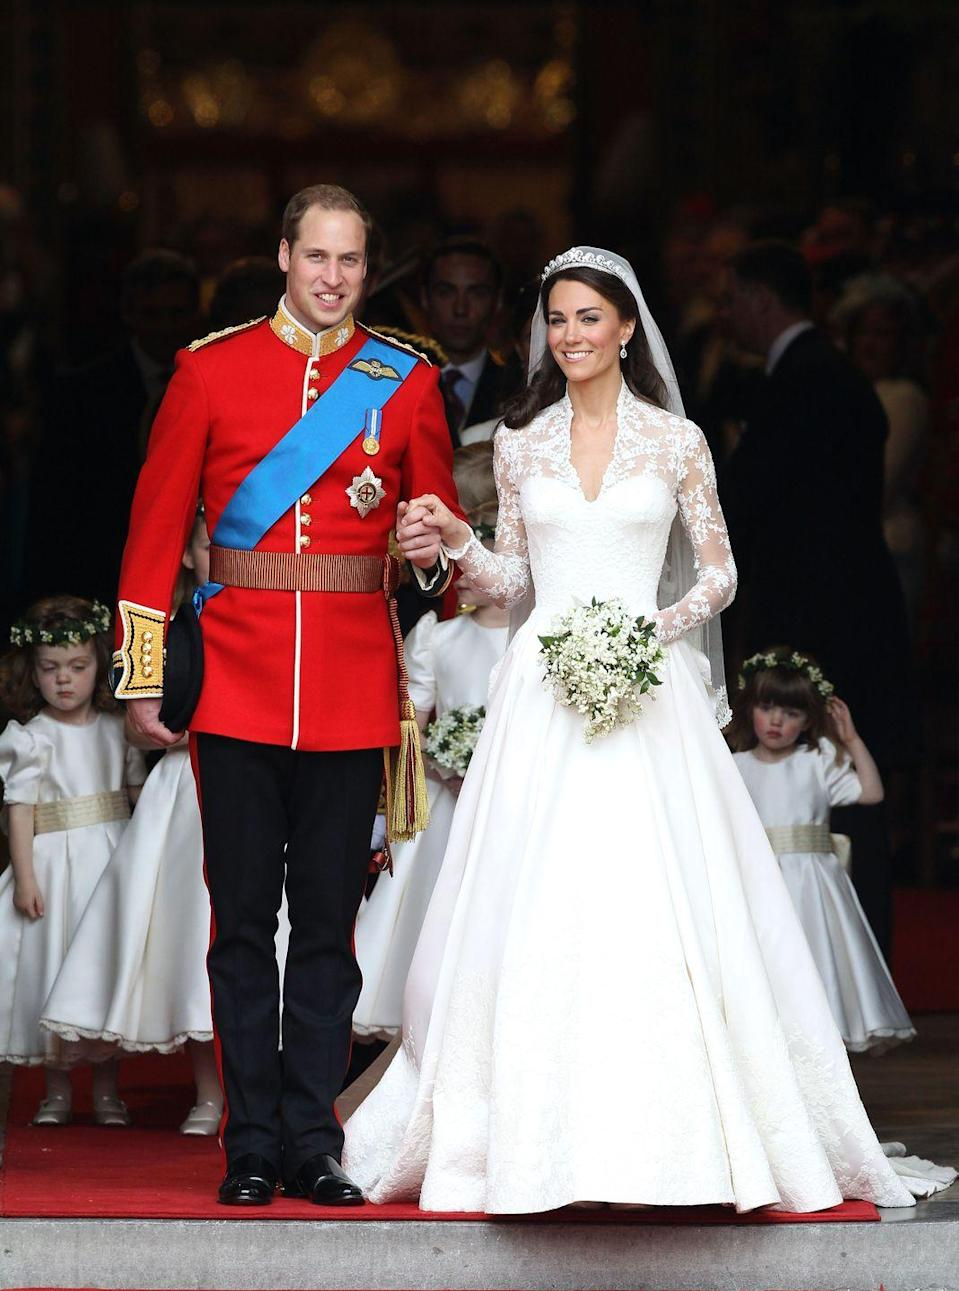 "<p>In keeping with royal tradition, after their nuptials, the bride and groom both receive a new name after being granted new titles by the Queen. For instance, on William's wedding day, he received the title of Duke of Cambridge and no longer uses his father's surname, Wales.</p><p><strong>RELATED: </strong><a href=""https://www.goodhousekeeping.com/life/entertainment/g3513/royal-wedding-facts/"" rel=""nofollow noopener"" target=""_blank"" data-ylk=""slk:40 Facts About Kate and William's Royal Wedding"" class=""link rapid-noclick-resp"">40 Facts About Kate and William's Royal Wedding</a></p>"